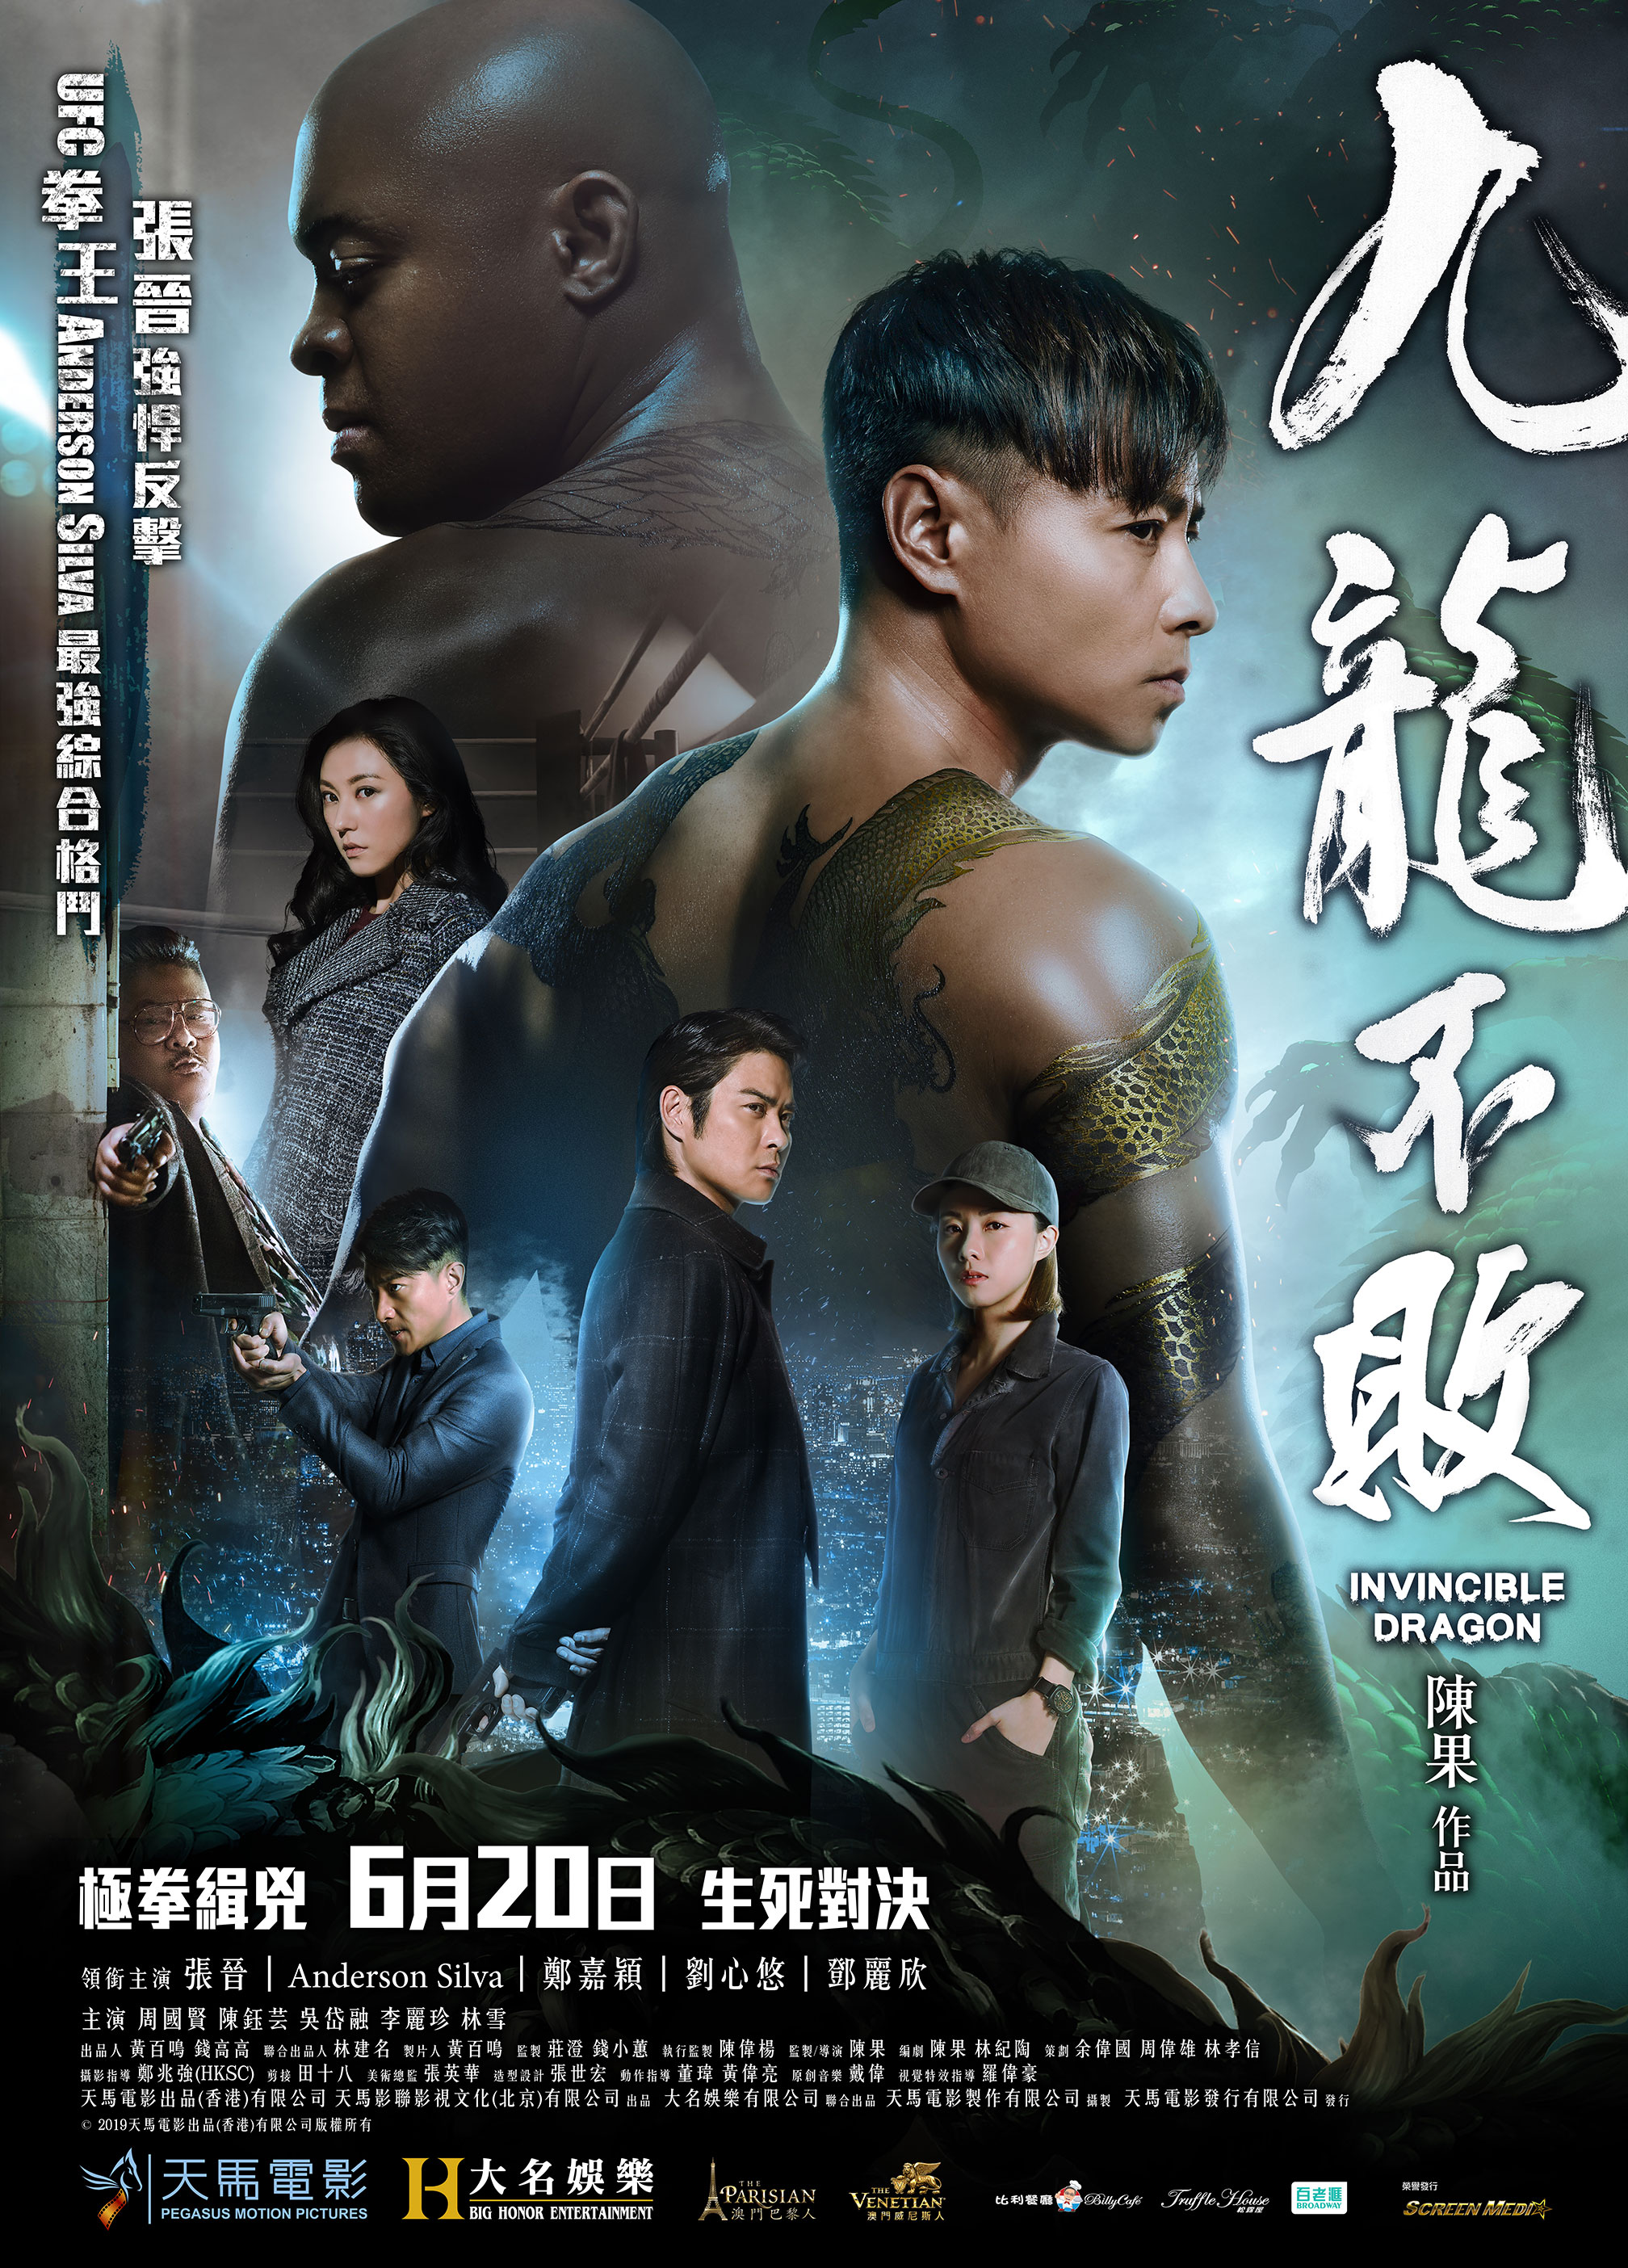 invincible-dragon_main-poster jun 20